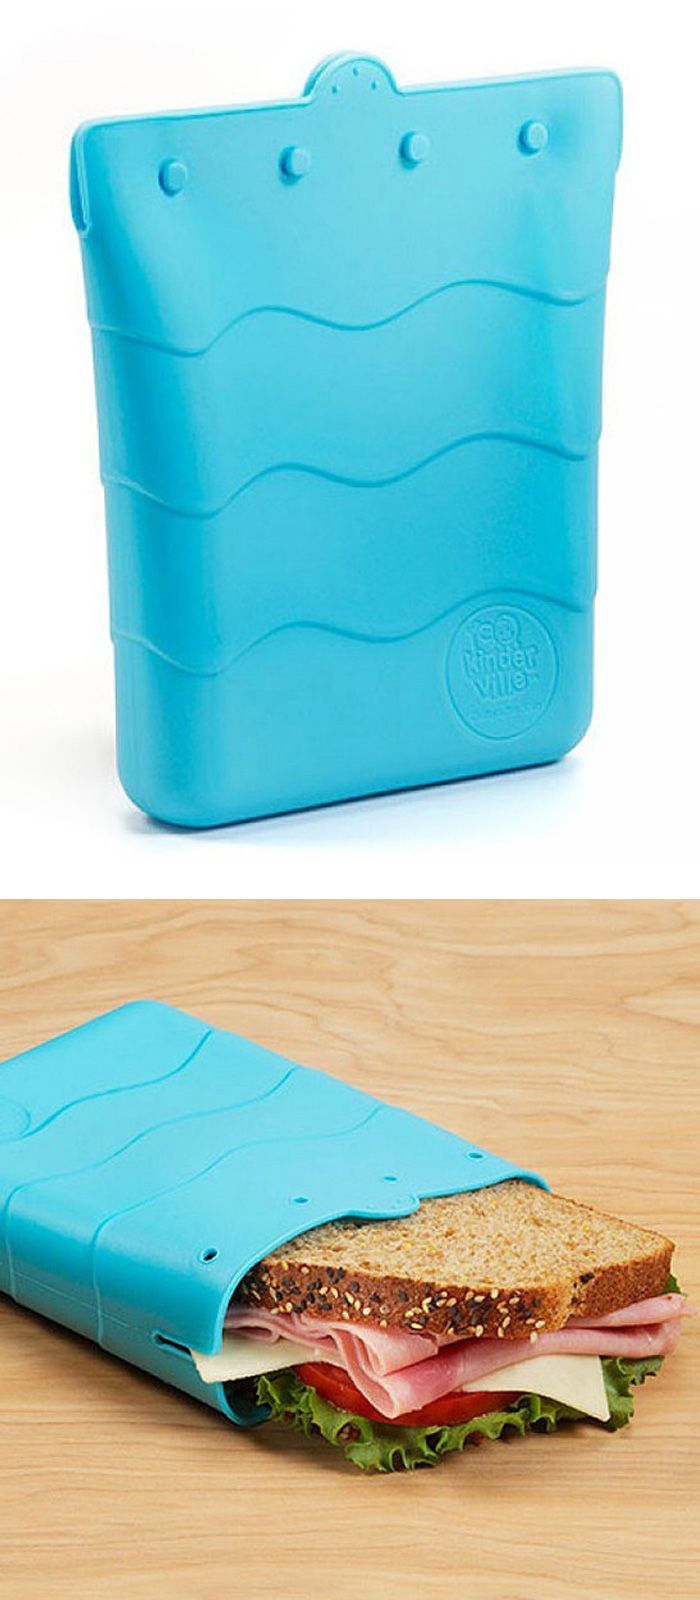 Silicone sandwich bag - great reusable alternative to expensive ziploc bags, doubles as a snack pouch! #product_design